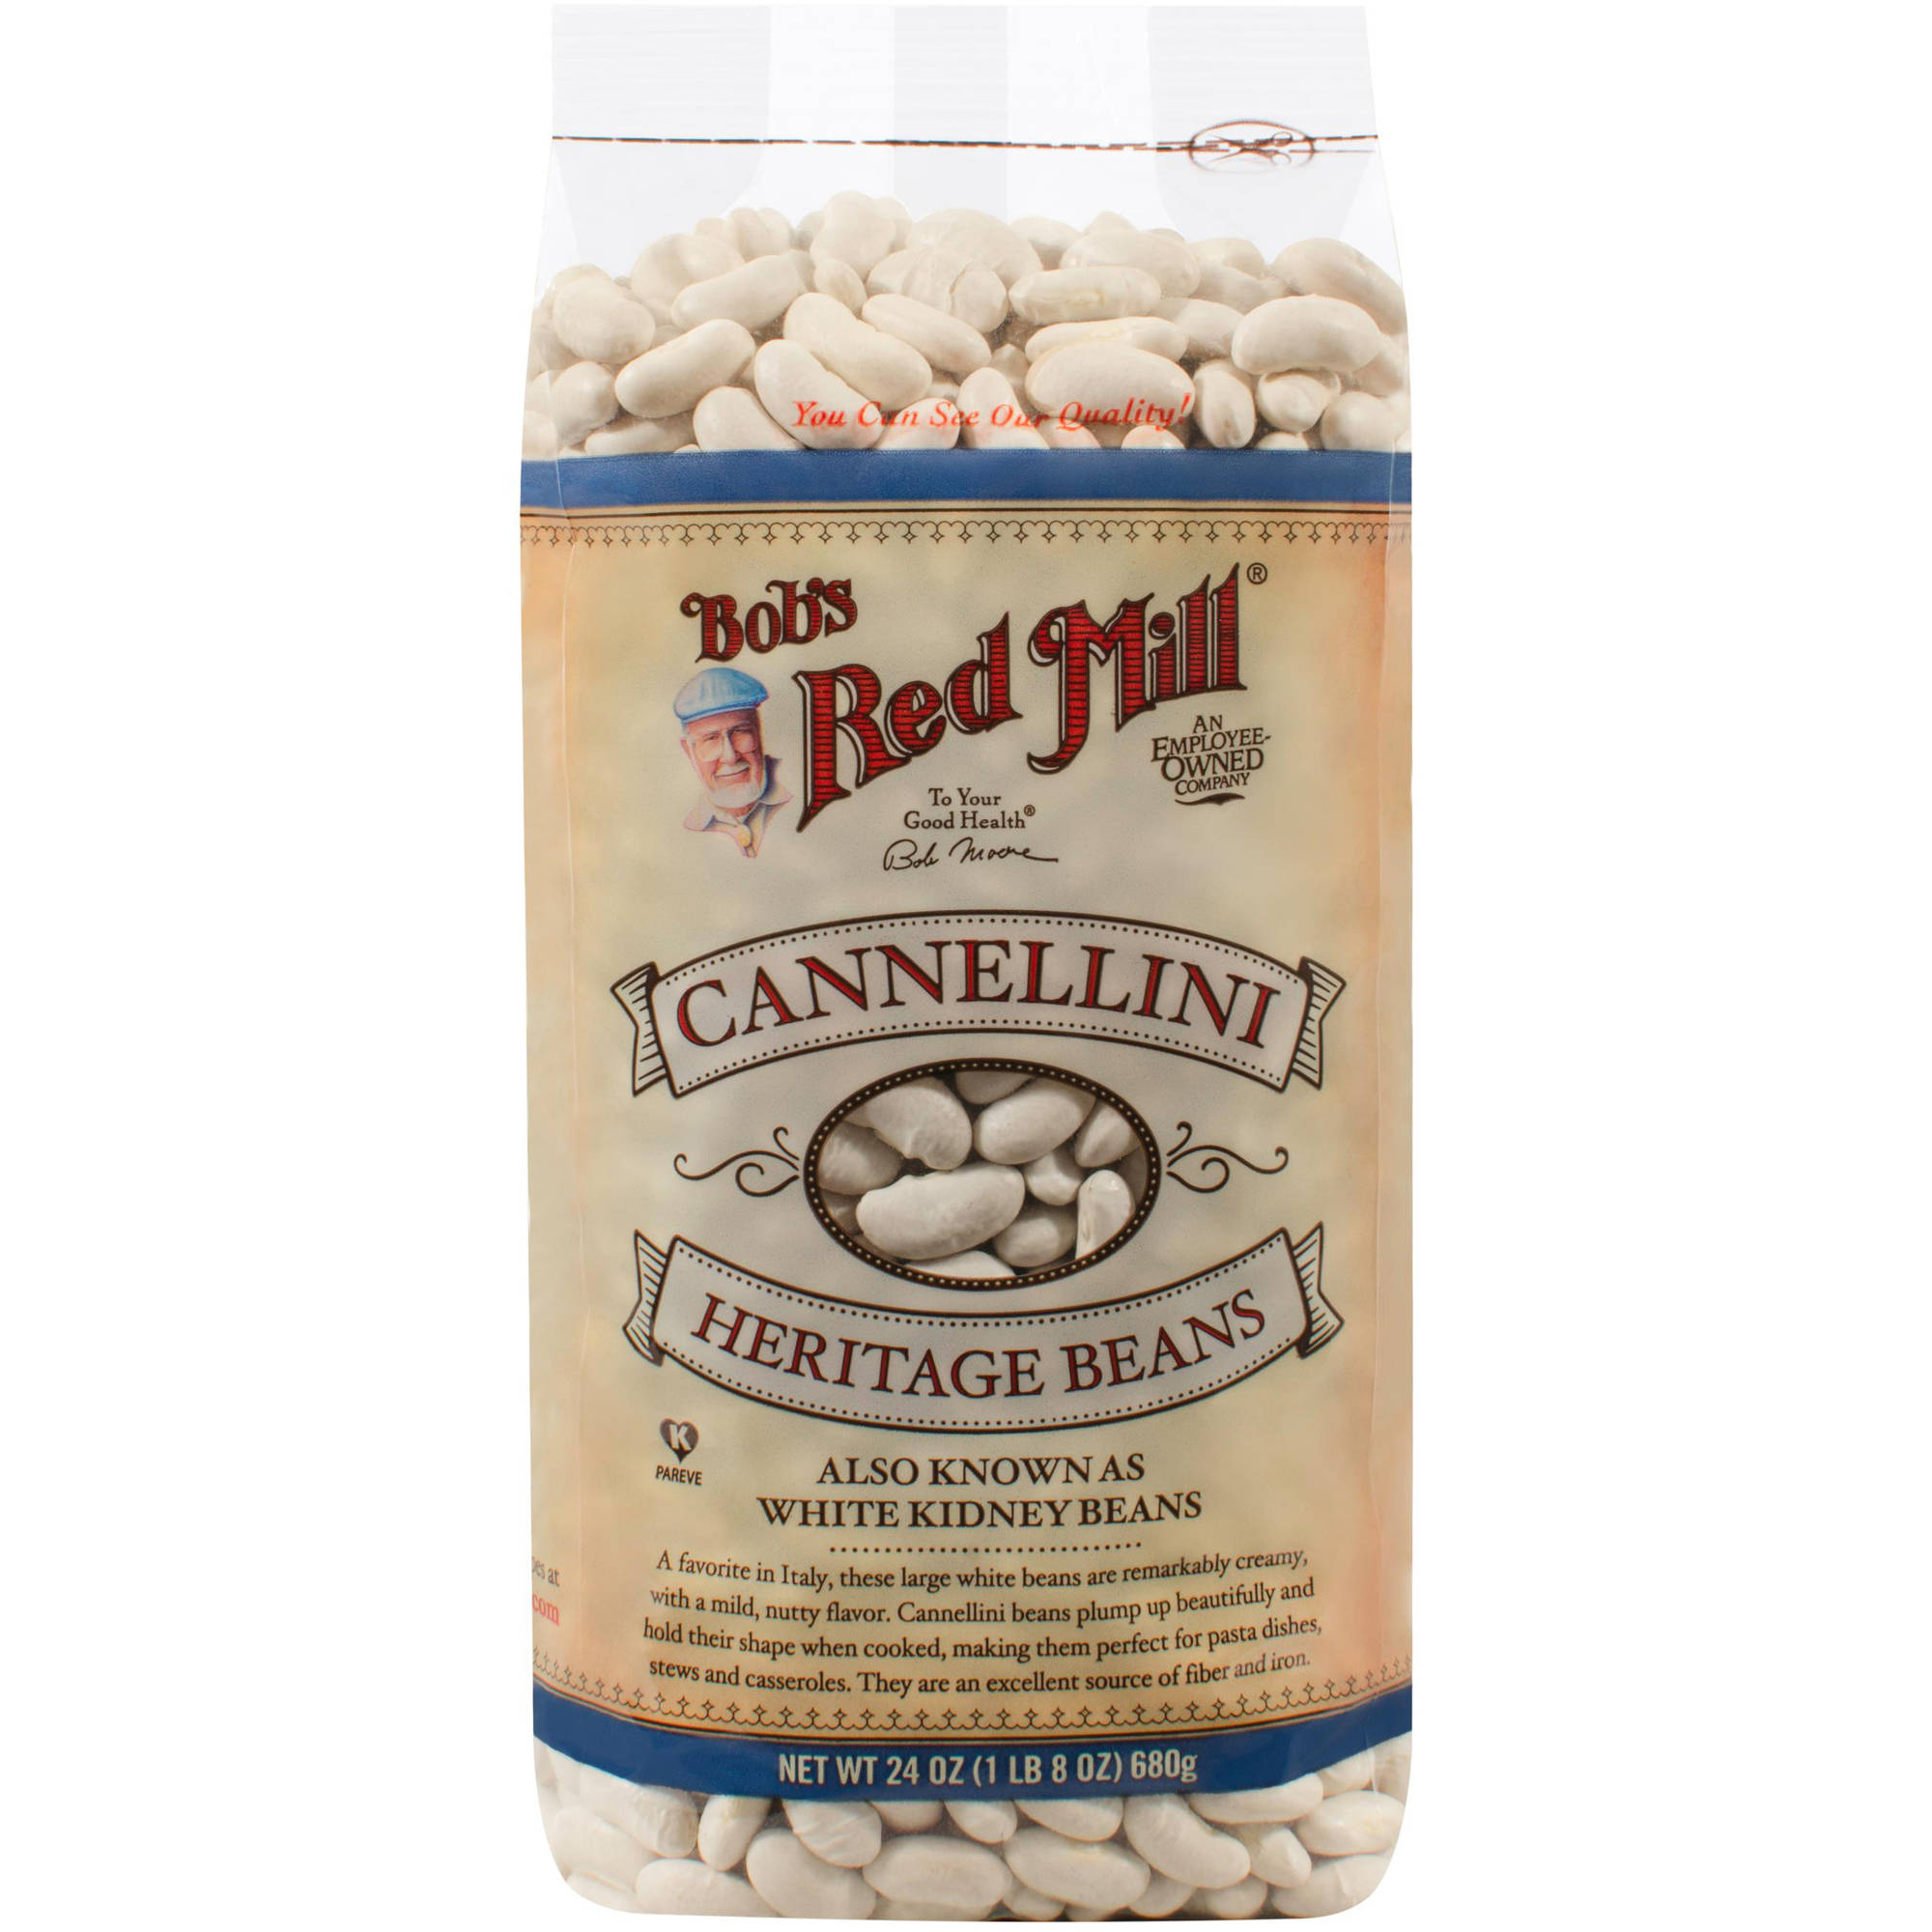 Bob's Red Mill Cannellini Beans, 24 oz (Pack of 4)